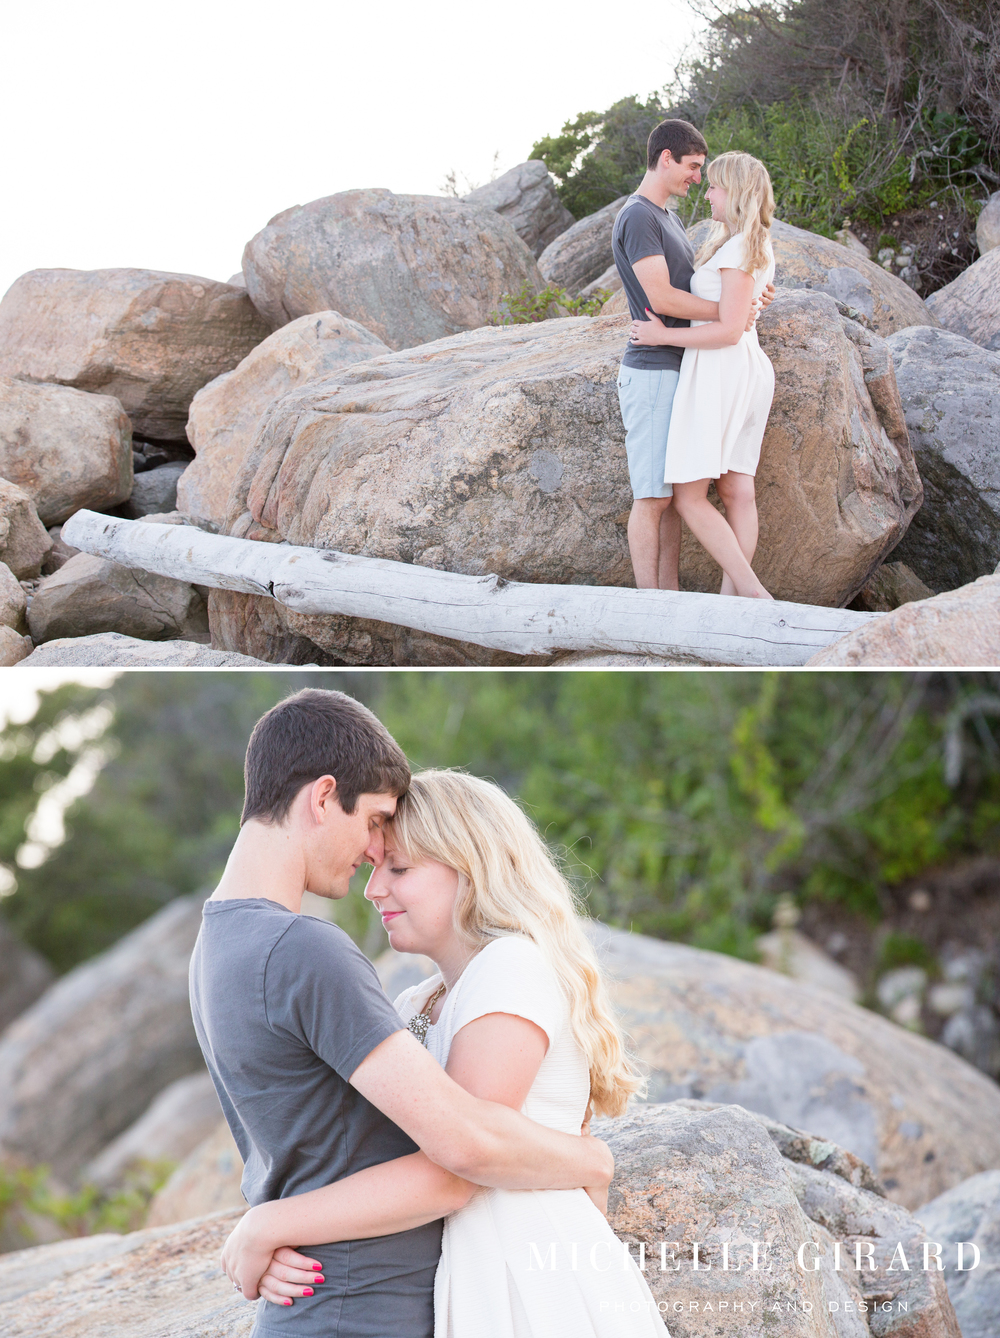 HammonassetBeach_ EngagementSession_MadisonCT_MichelleGirardPhotography02.jpg